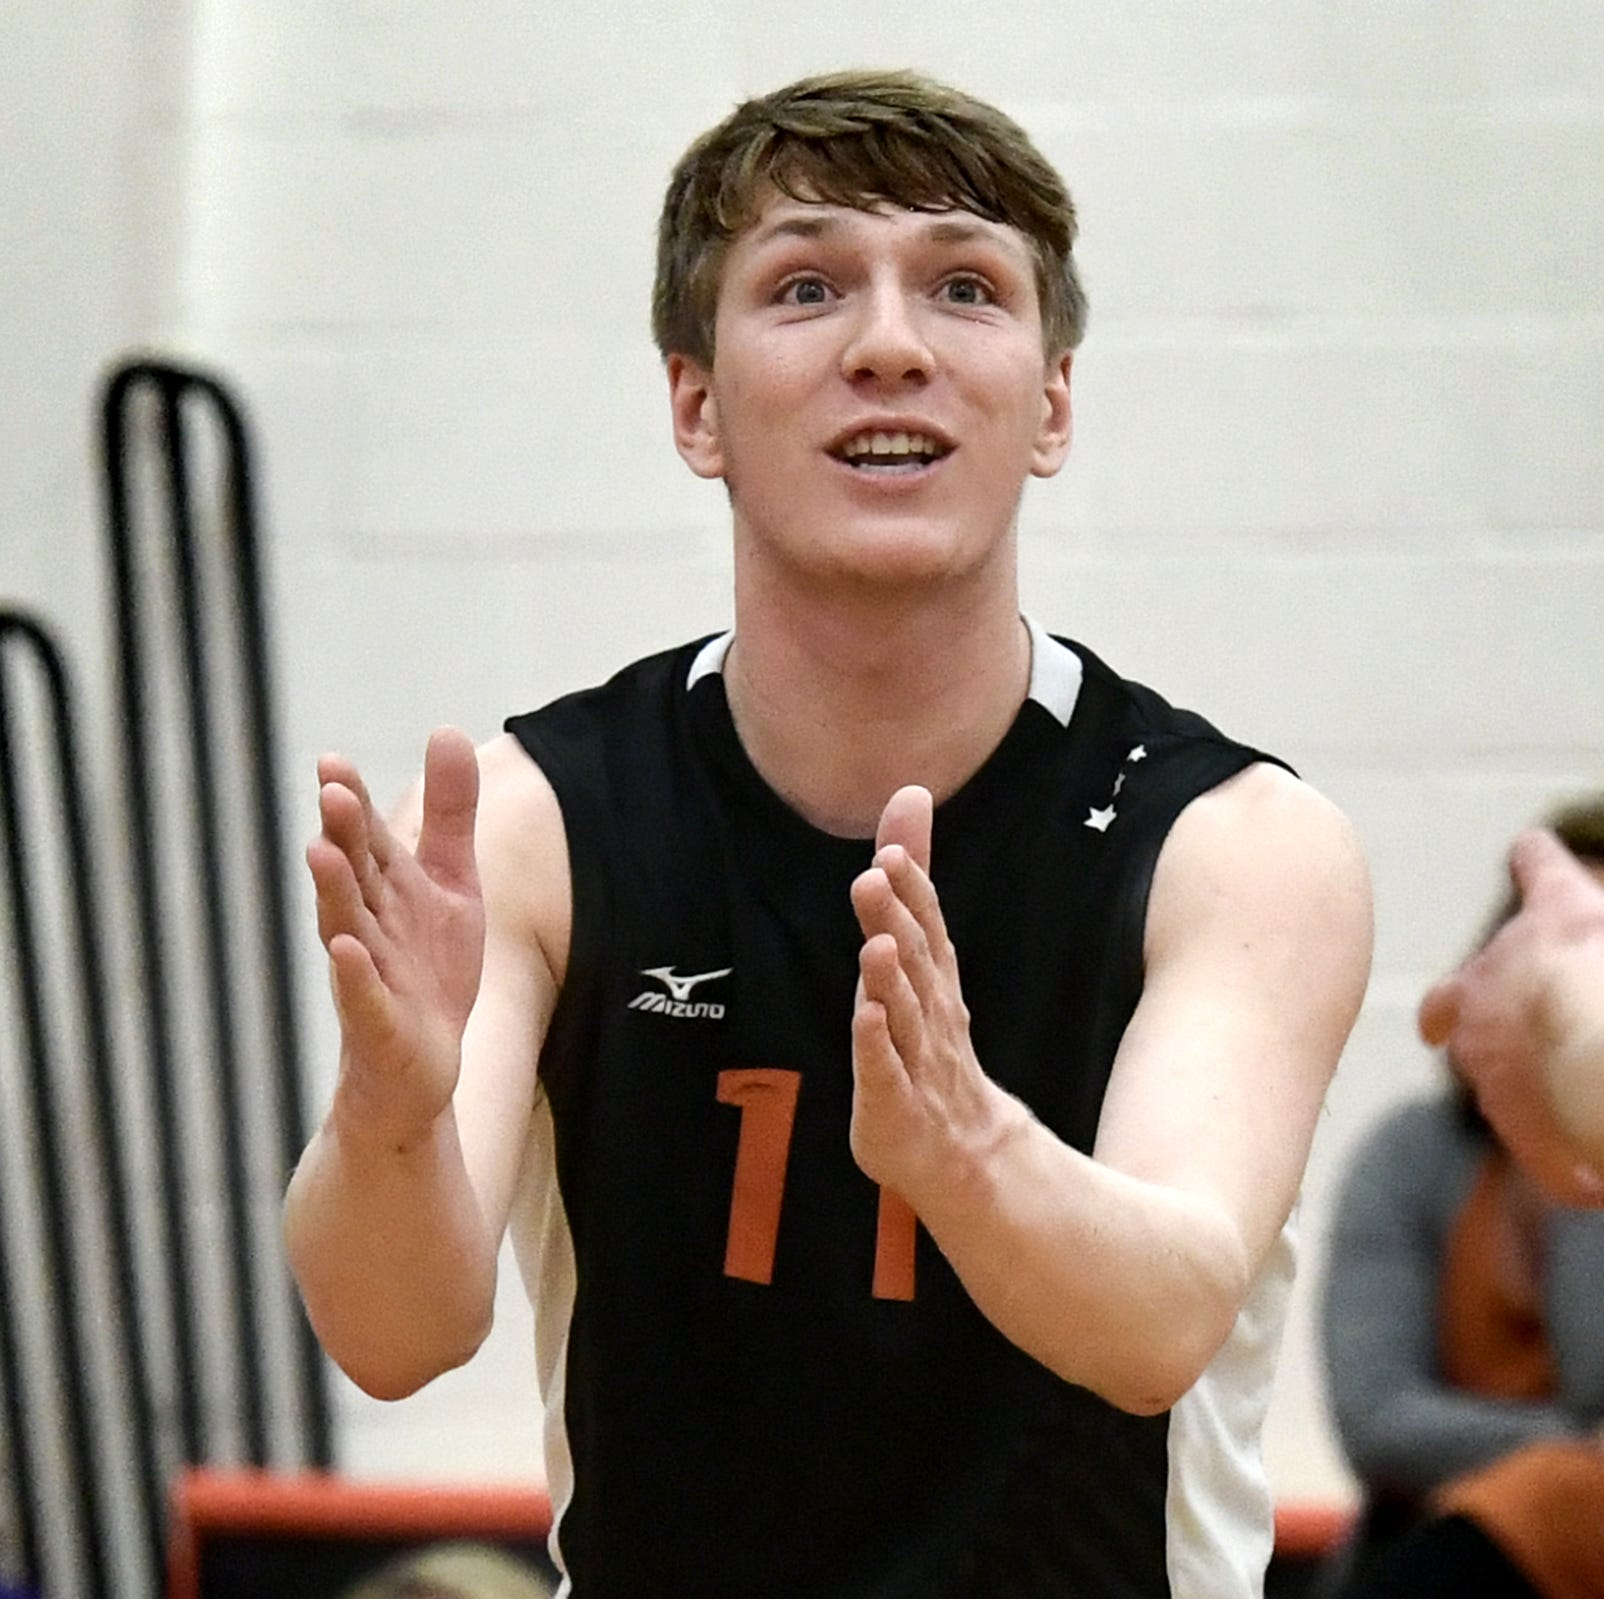 DISTRICT 3 BOYS' VOLLEYBALL, MONDAY, MAY 20: Central, Suburban, Northeastern earn wins